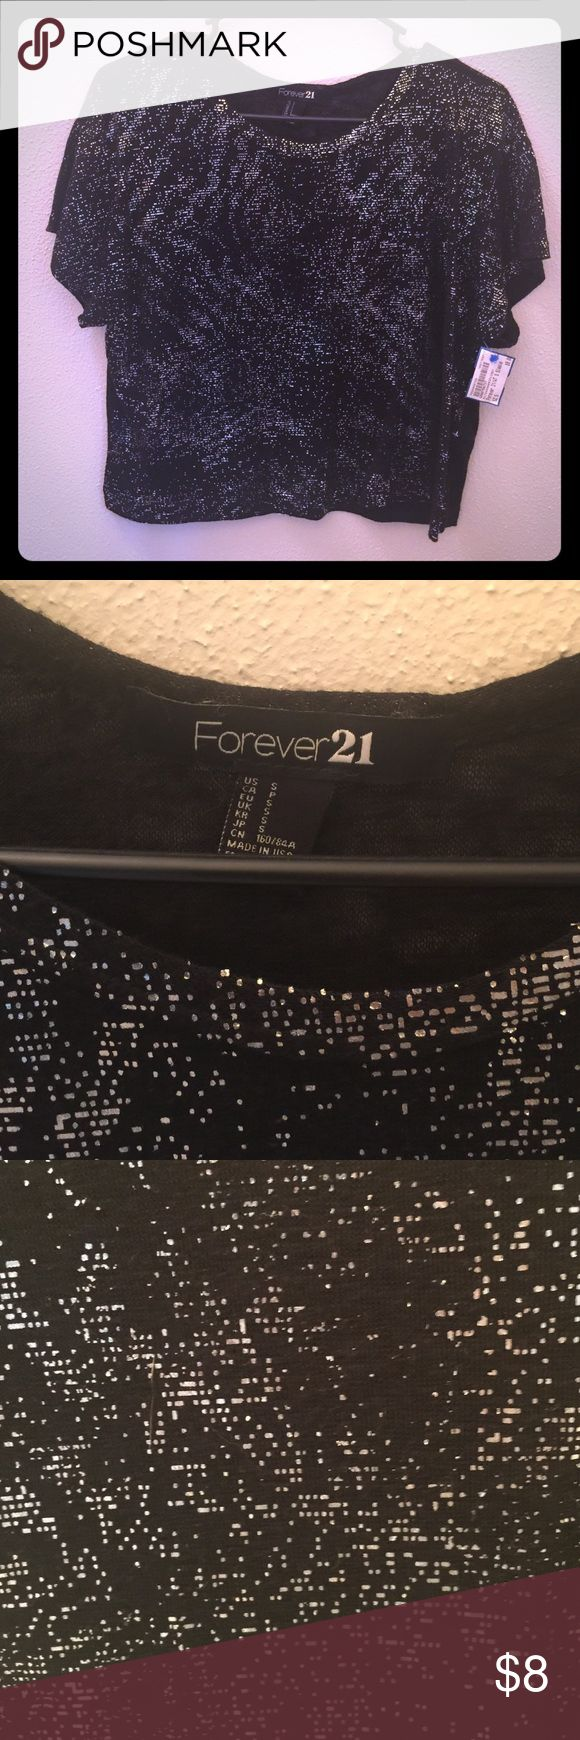 Forever 21 fashion top size S Classy forever 21 top. Great for work or even going out comfortable and versatile Forever 21 Tops Blouses